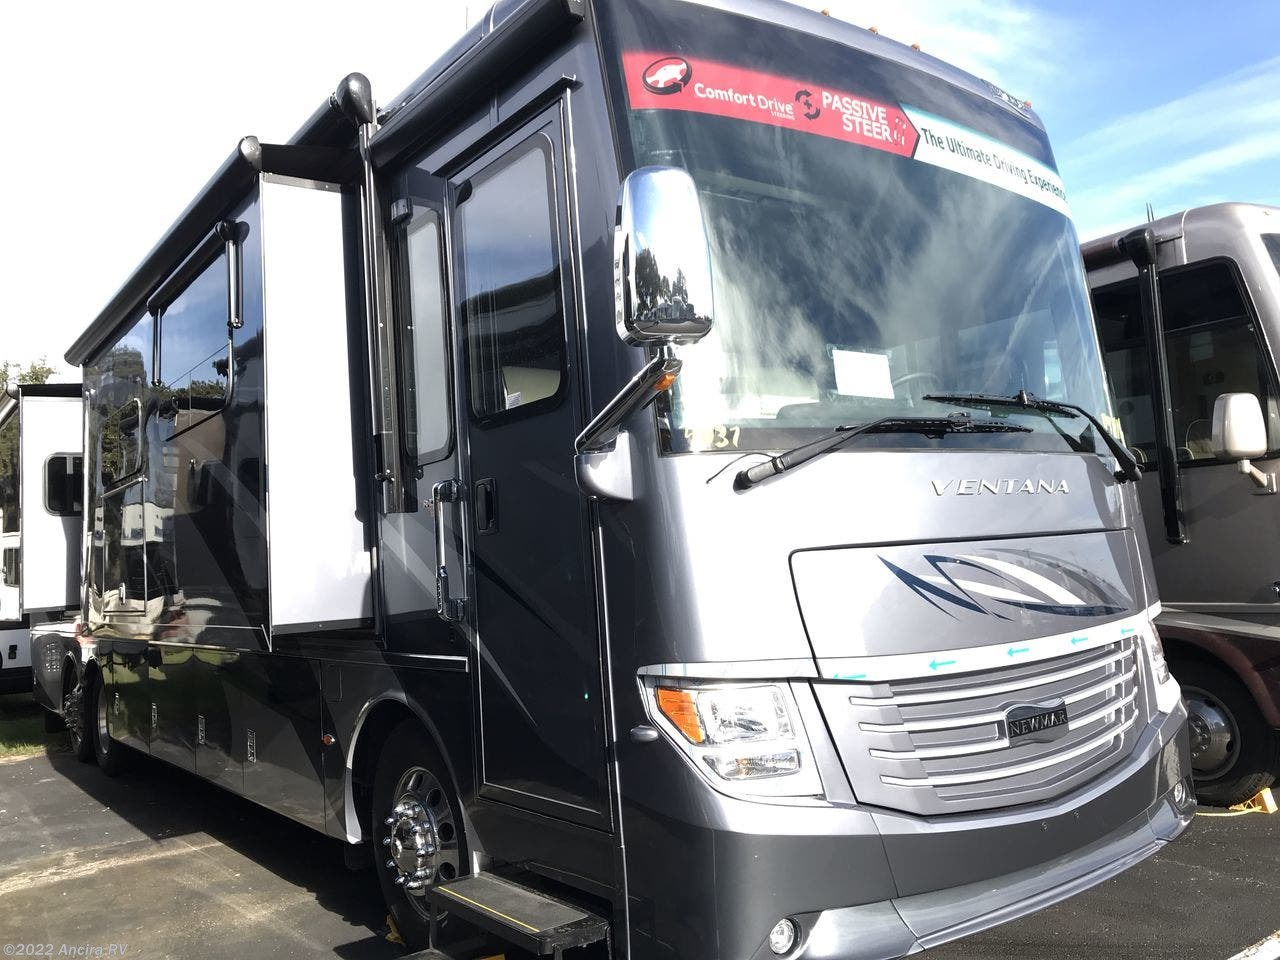 BY426 - 2019 Newmar Ventana LE 3426 Diesel Pusher for sale